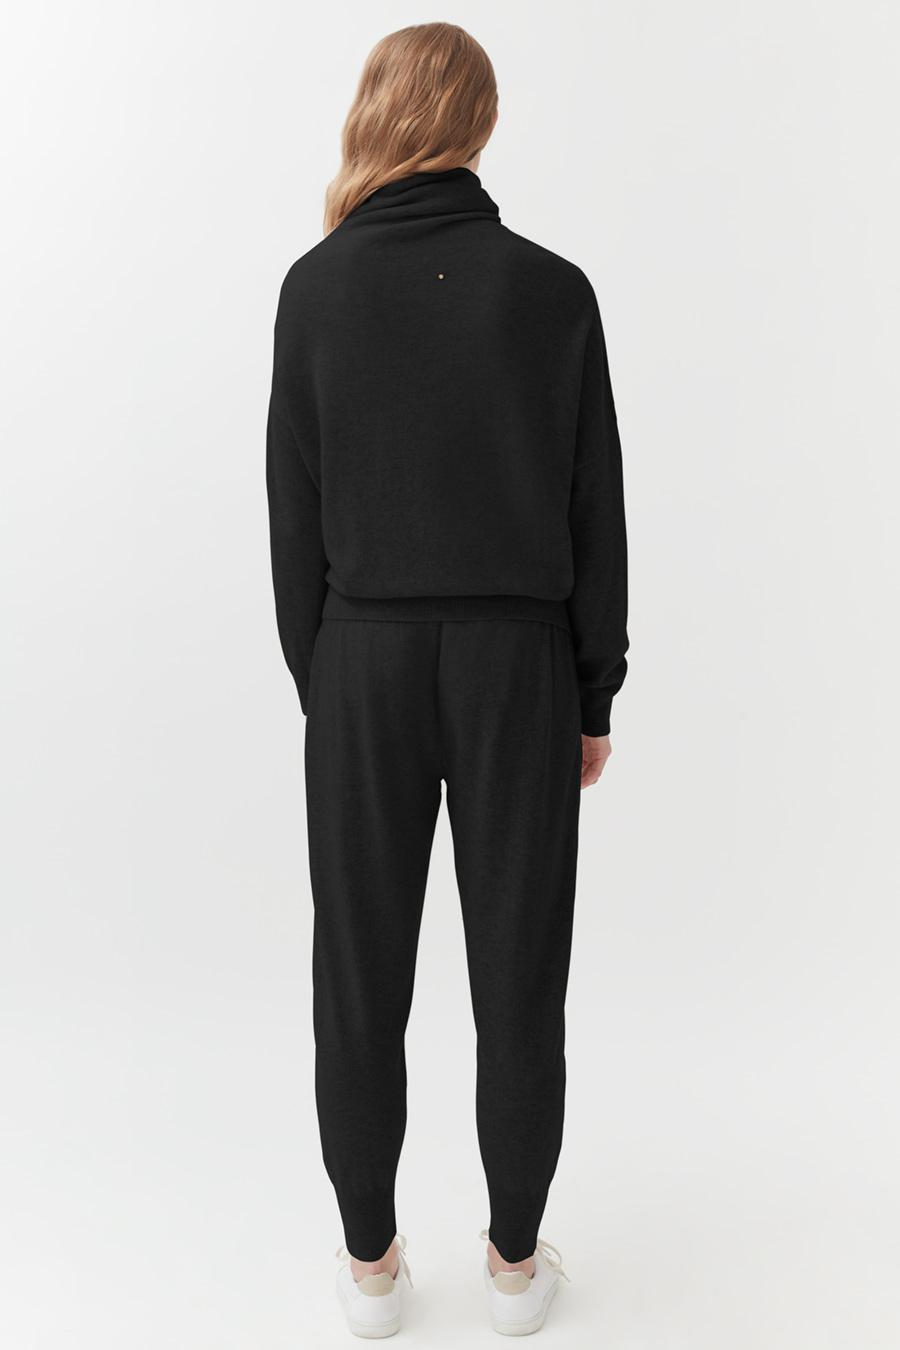 Women's Tapered Pant in Black   Size: XS   Cashmere by Cuyana 2